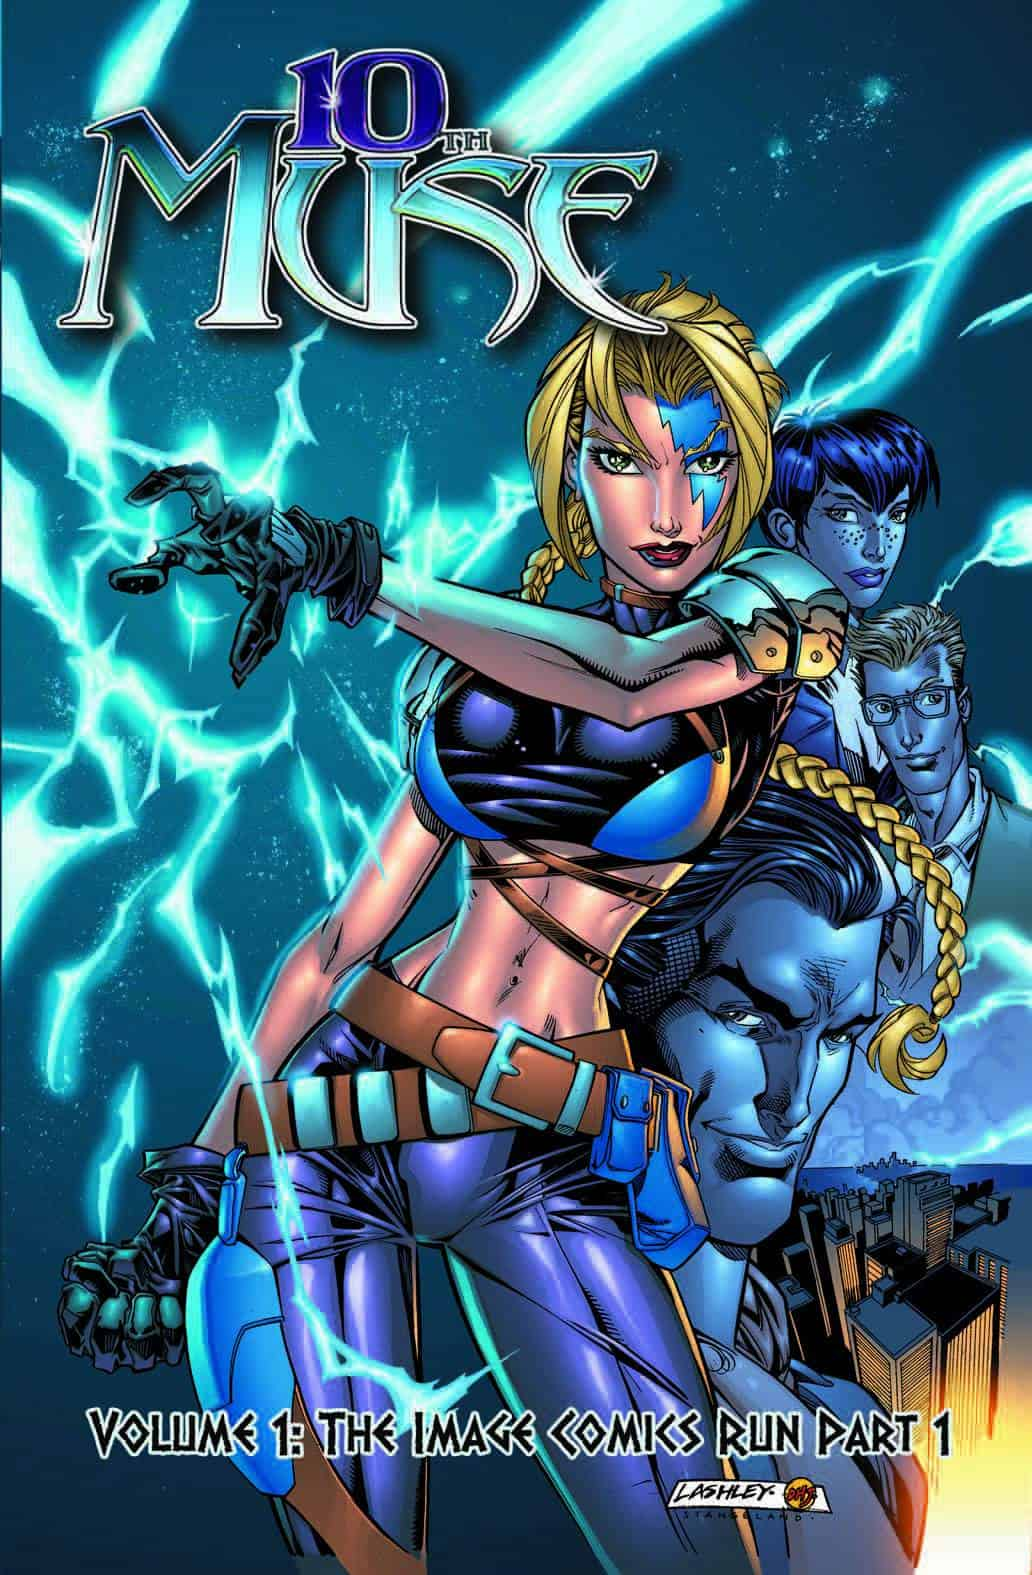 10th-Muse-Vol-1-the-Image-Comics-Run-Part-1-Cover